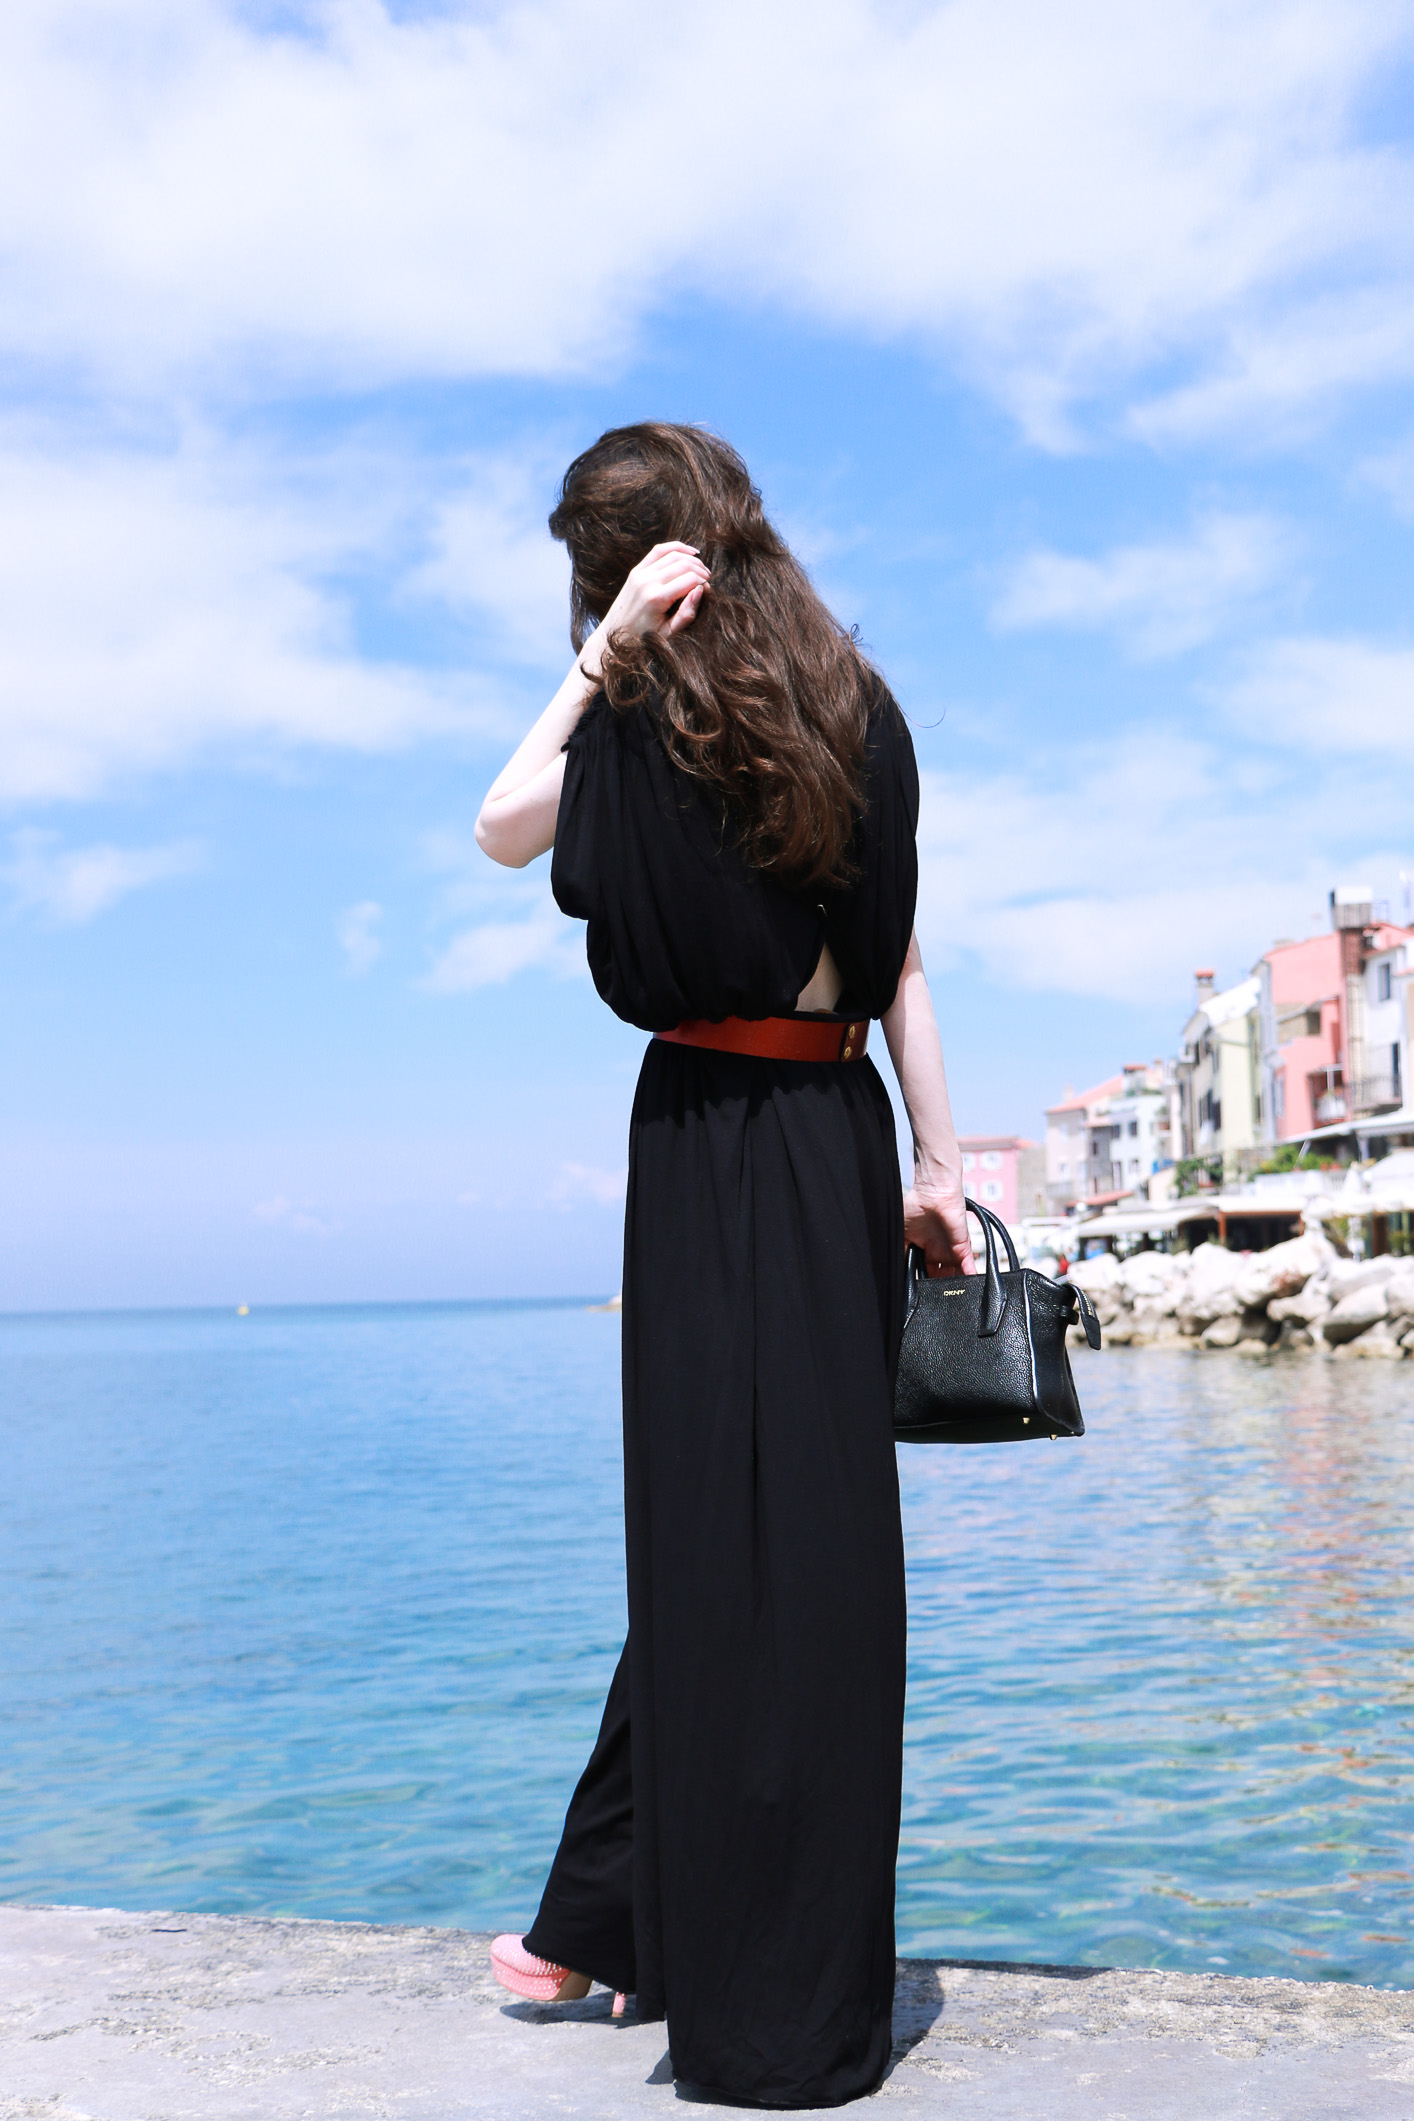 Fashion blogger Veronika Lipar of Brunette From Wall Street sharing the best dresses to wear to gala events this season